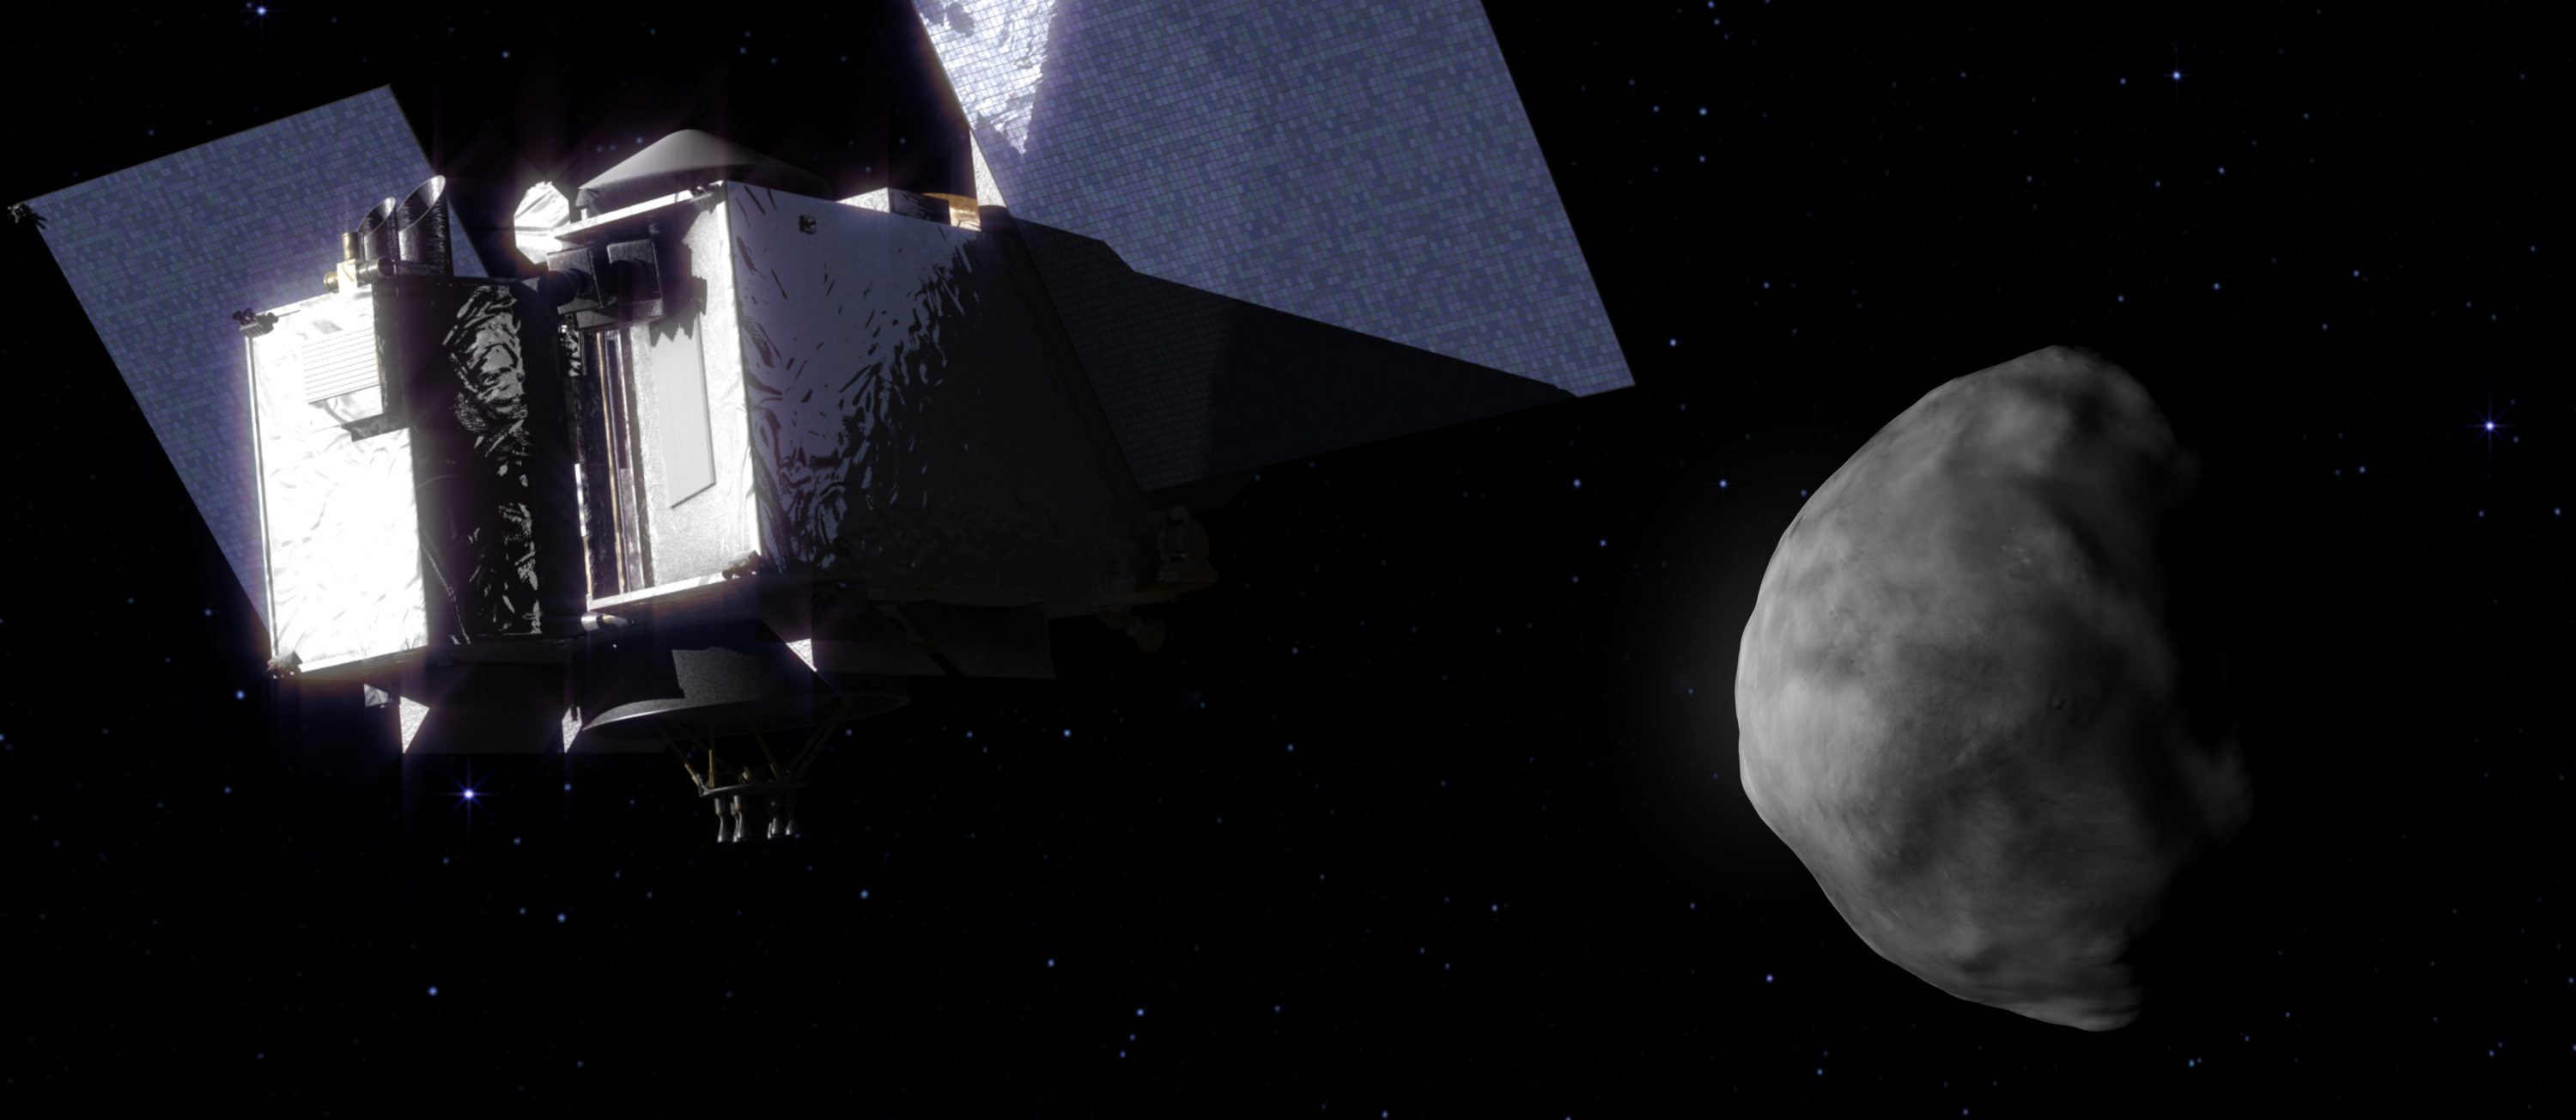 3000 nasa asteroid - photo #15